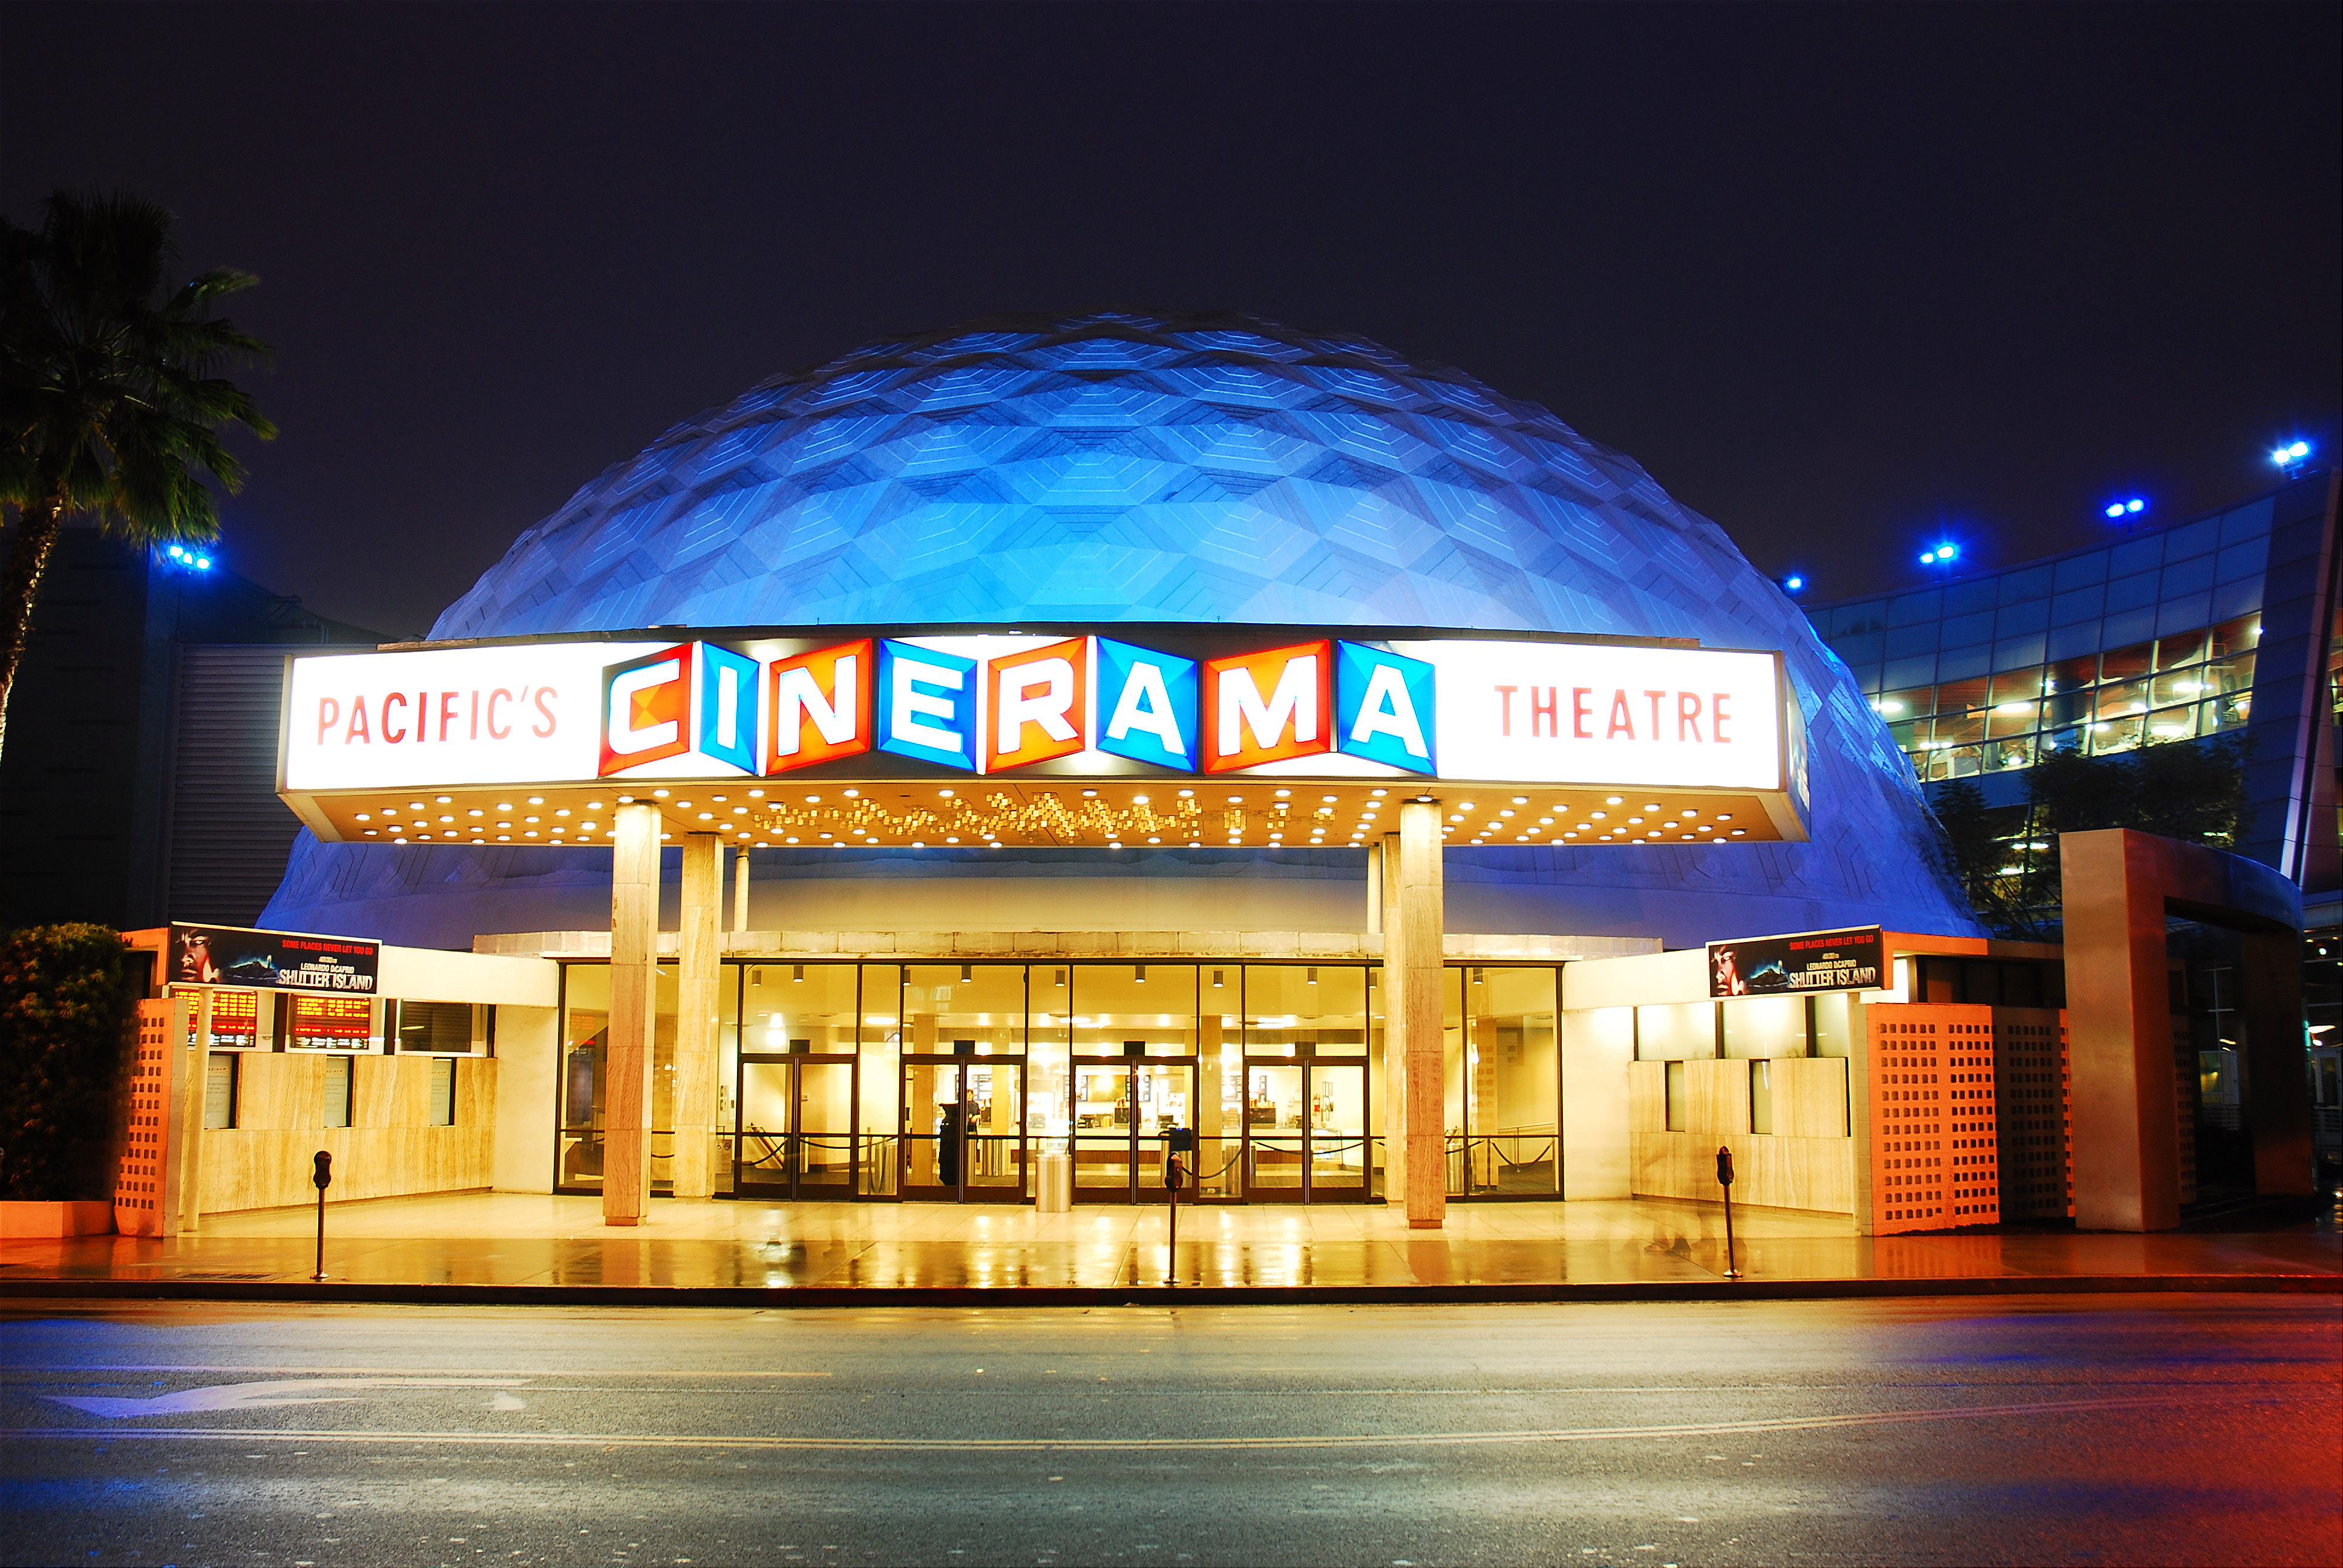 The bright lights of a theater marquee and lobby seen at night, with the outline of a white dome visible in the background